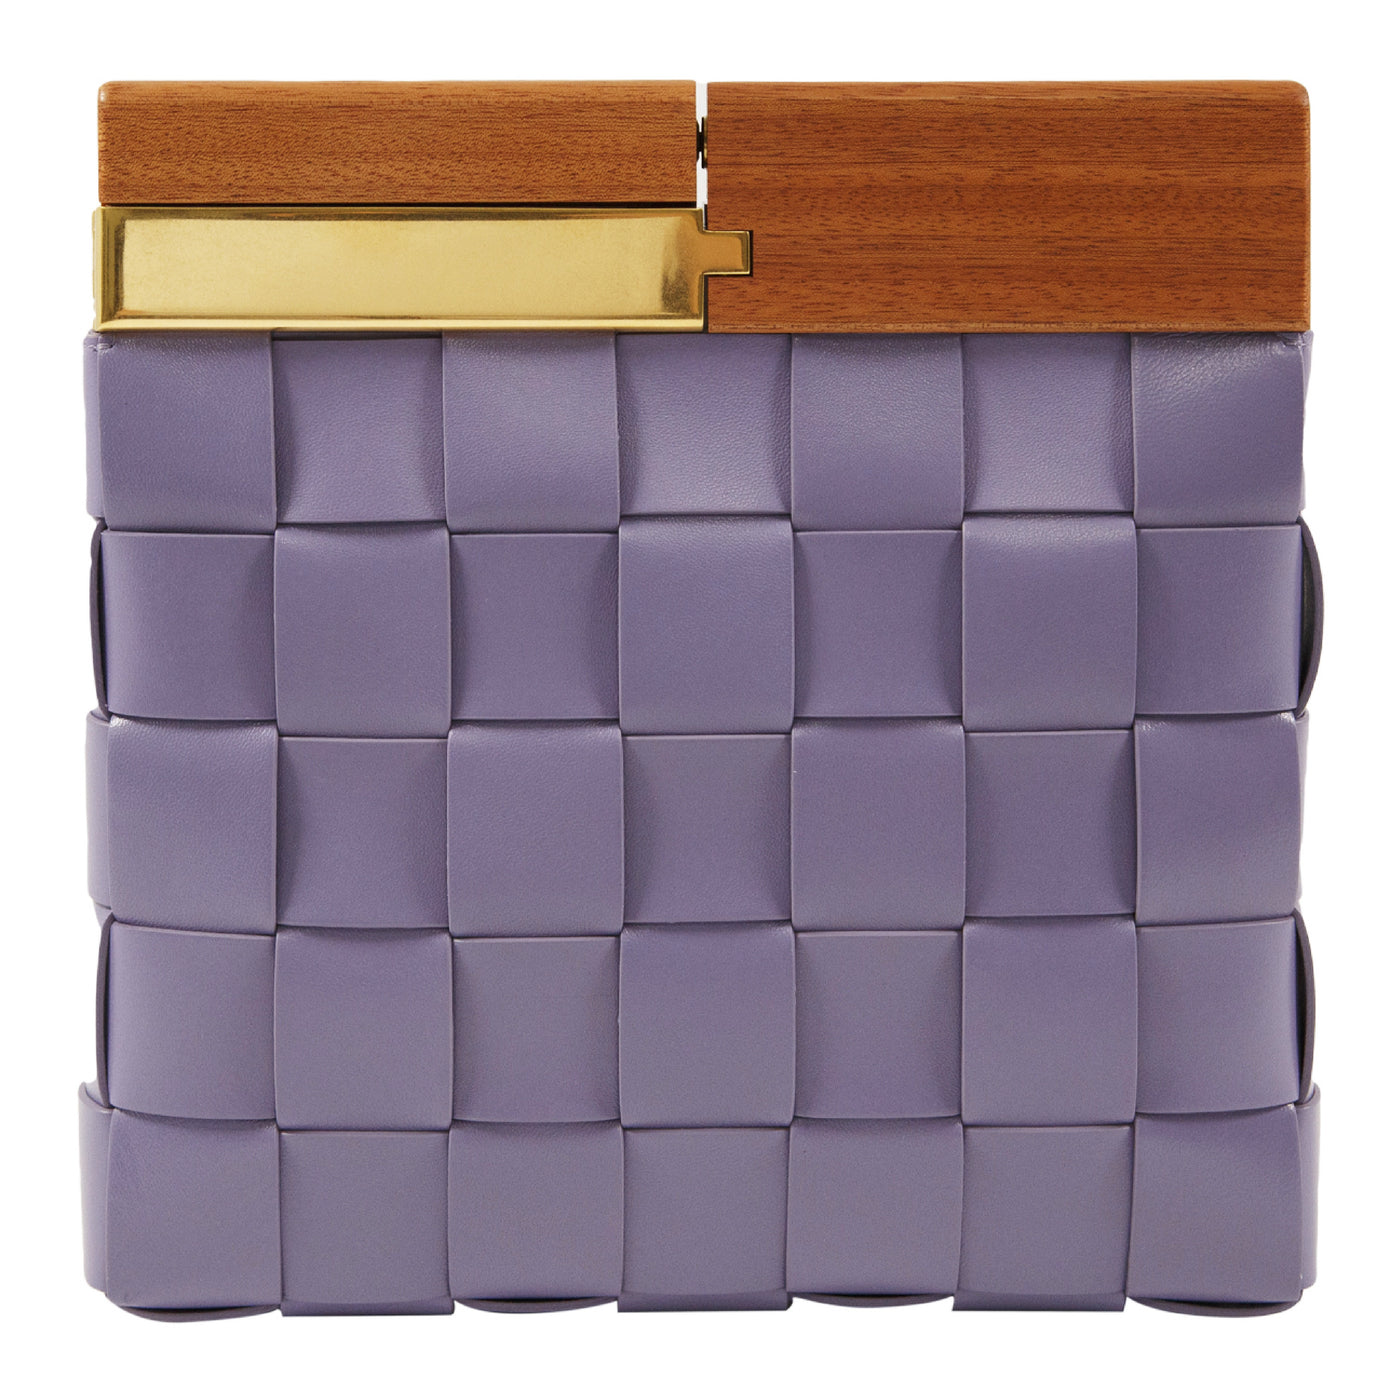 Load image into Gallery viewer, BOTTEGA VENETA WOVEN LEATHER CLUTCH PURPLE